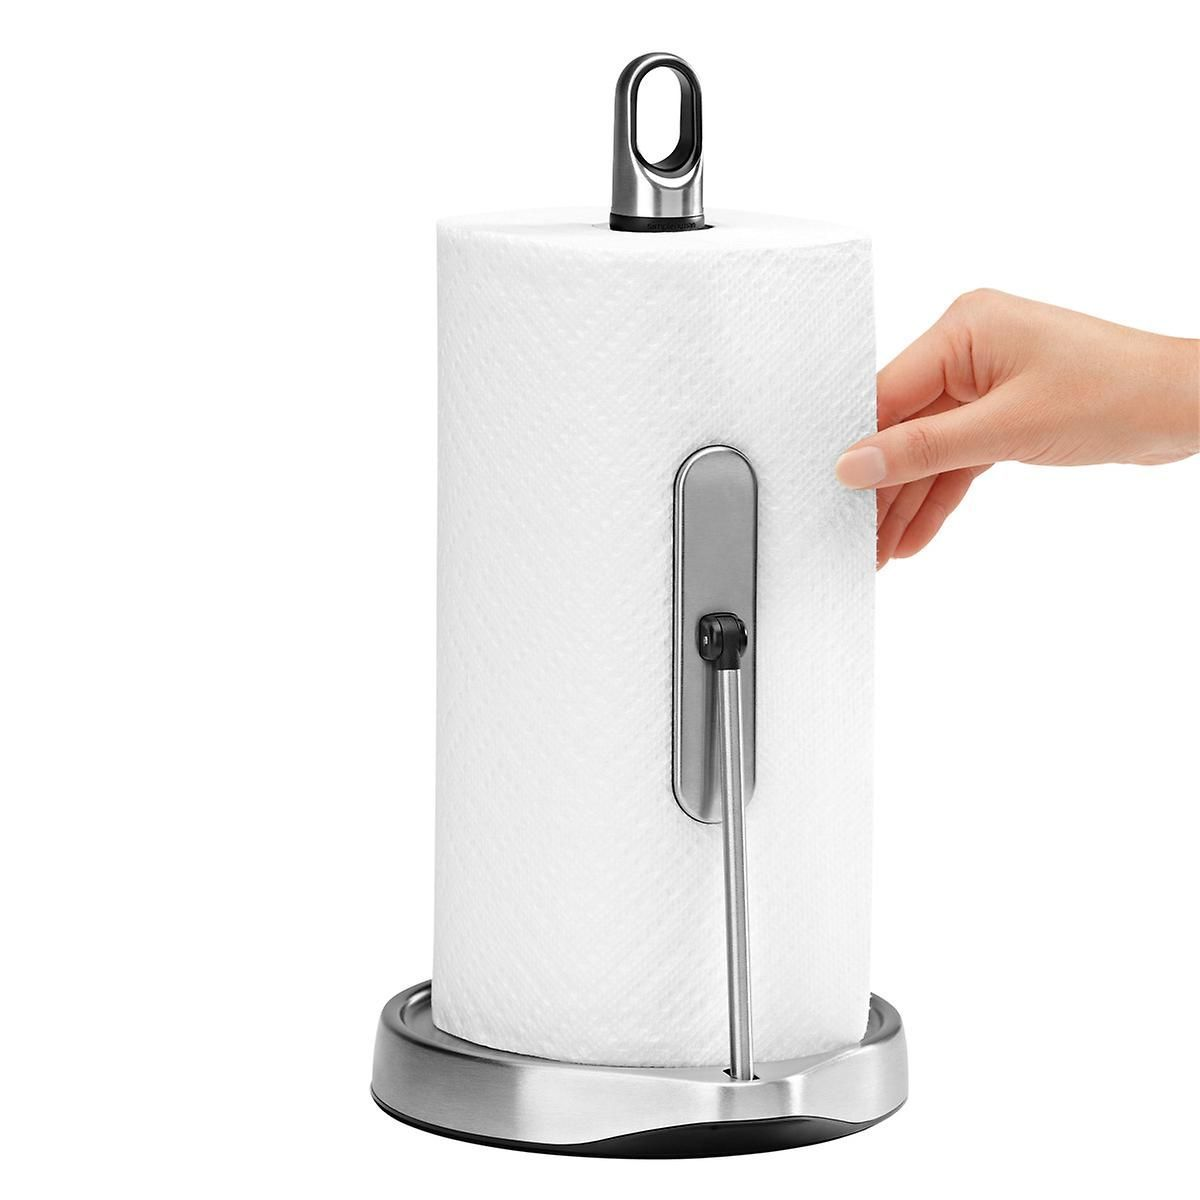 simplehuman Stainless Steel Tension Arm Paper Towel Holder | The Container Store #papertowelholders simplehuman Stainless Steel Tension Arm Paper Towel Holder | The Container Store #papertowelholders